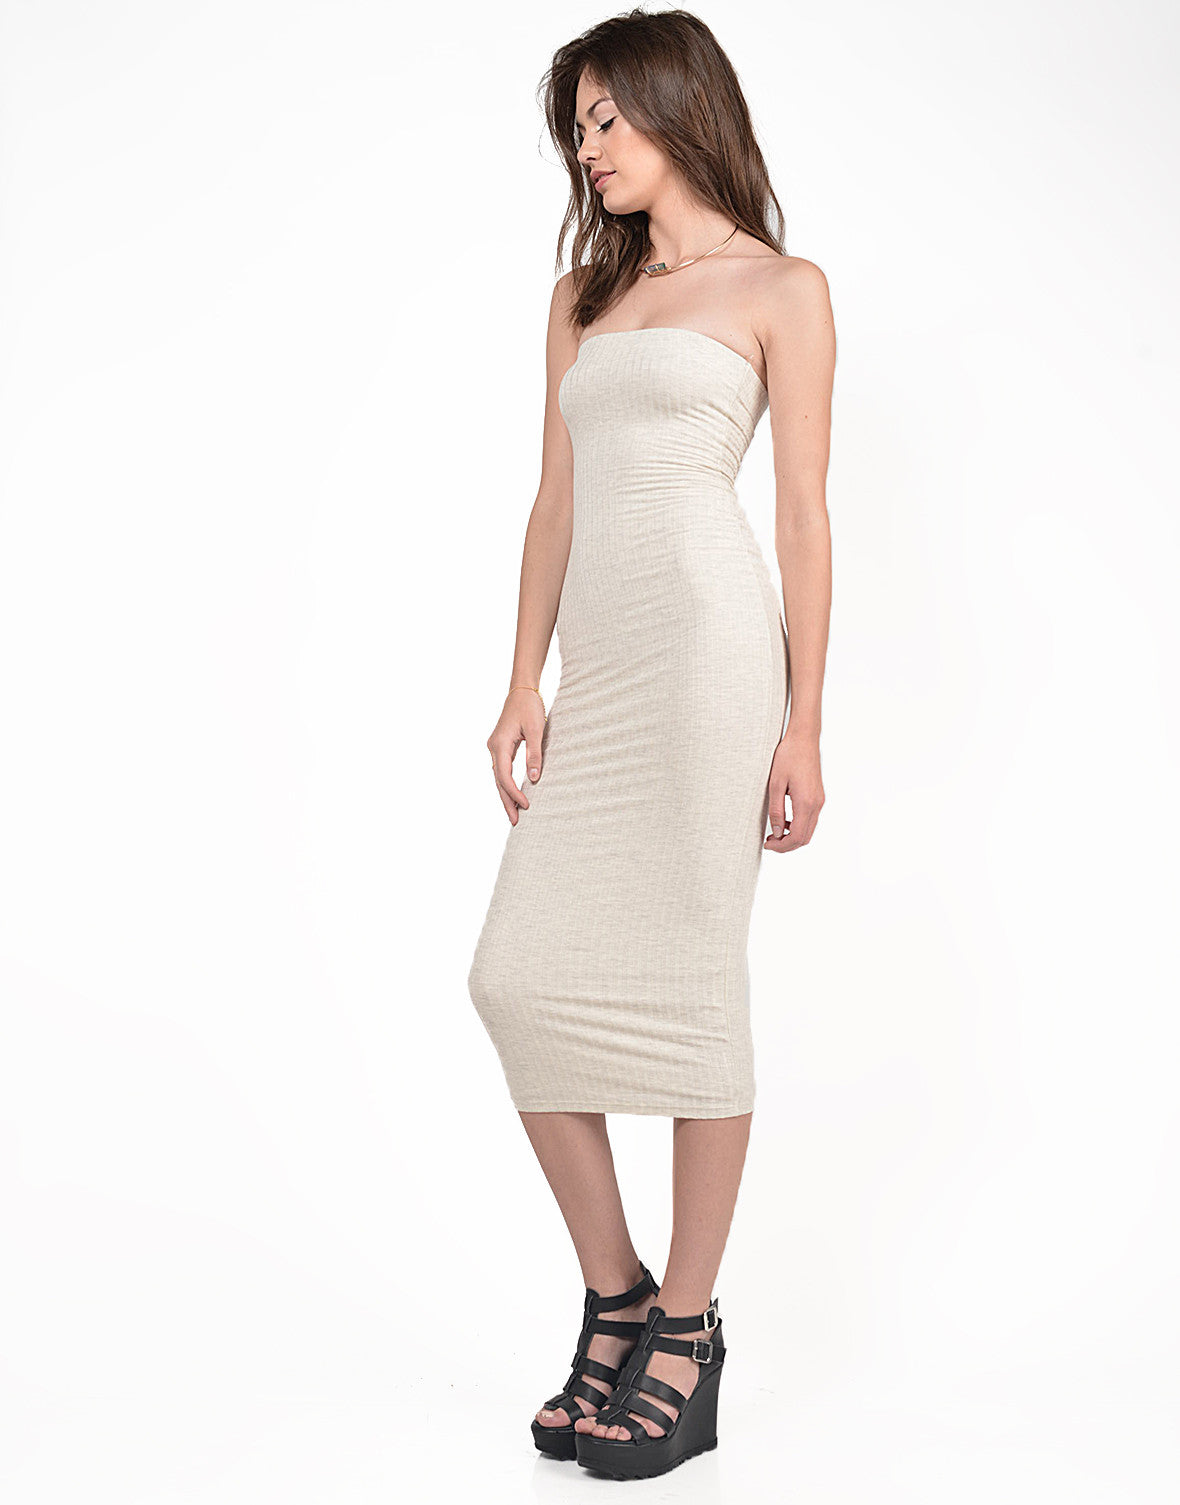 Detail of Strapless Ribbed Midi Dress